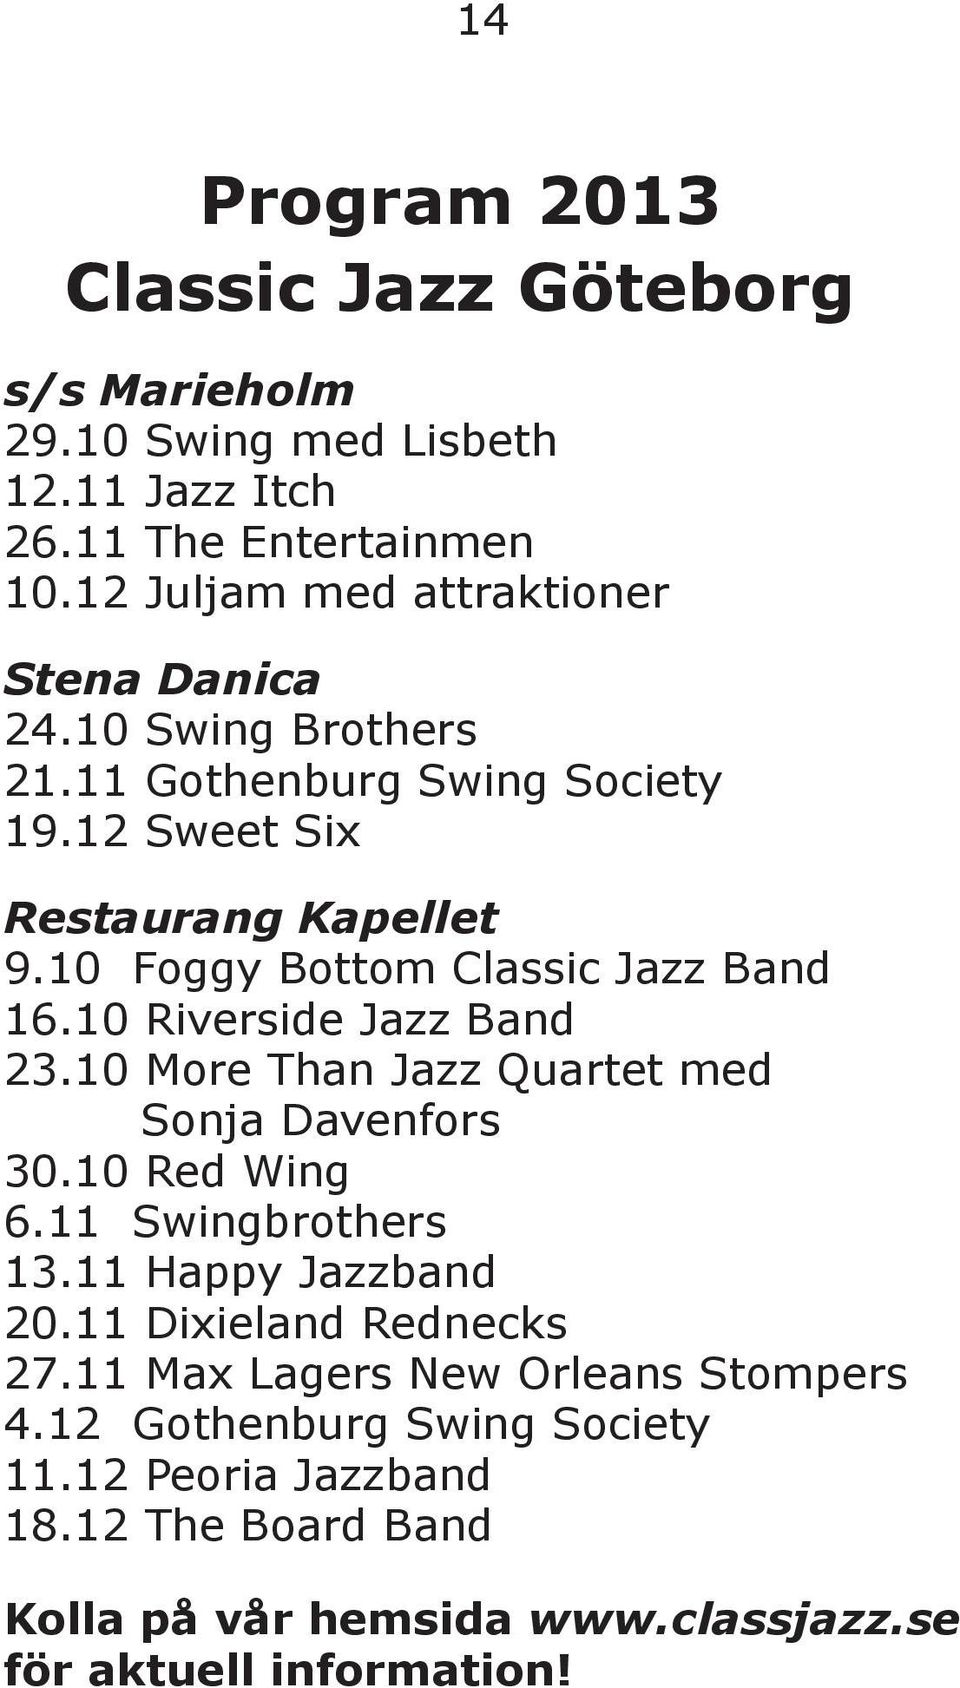 10 Foggy Bottom Classic Jazz Band 16.10 Riverside Jazz Band 23.10 More Than Jazz Quartet med Sonja Davenfors 30.10 Red Wing 6.11 Swingbrothers 13.